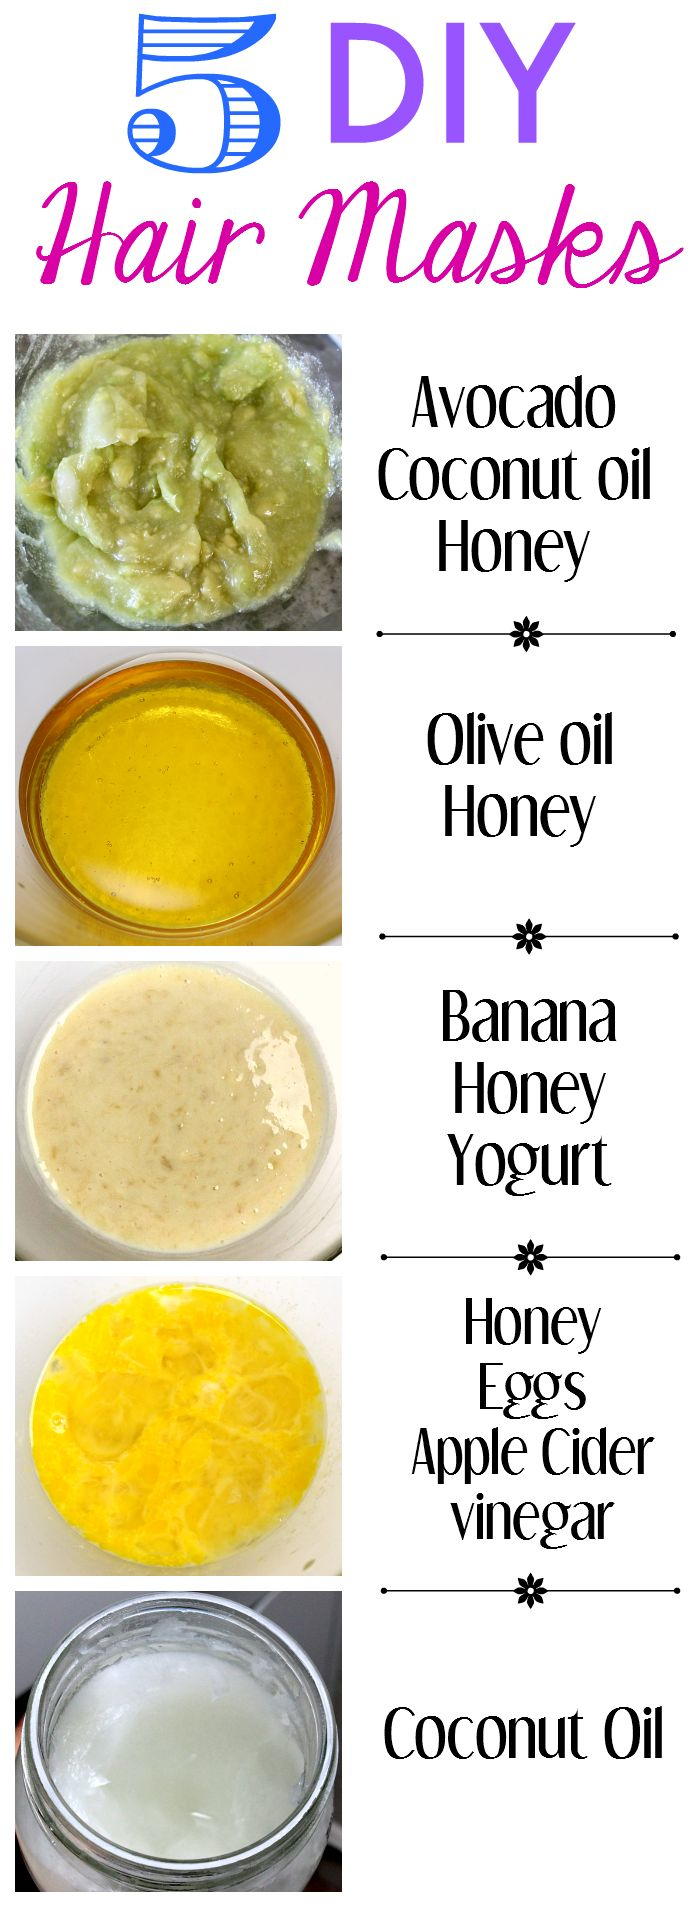 5 DIY hair masks - recipes and instructions